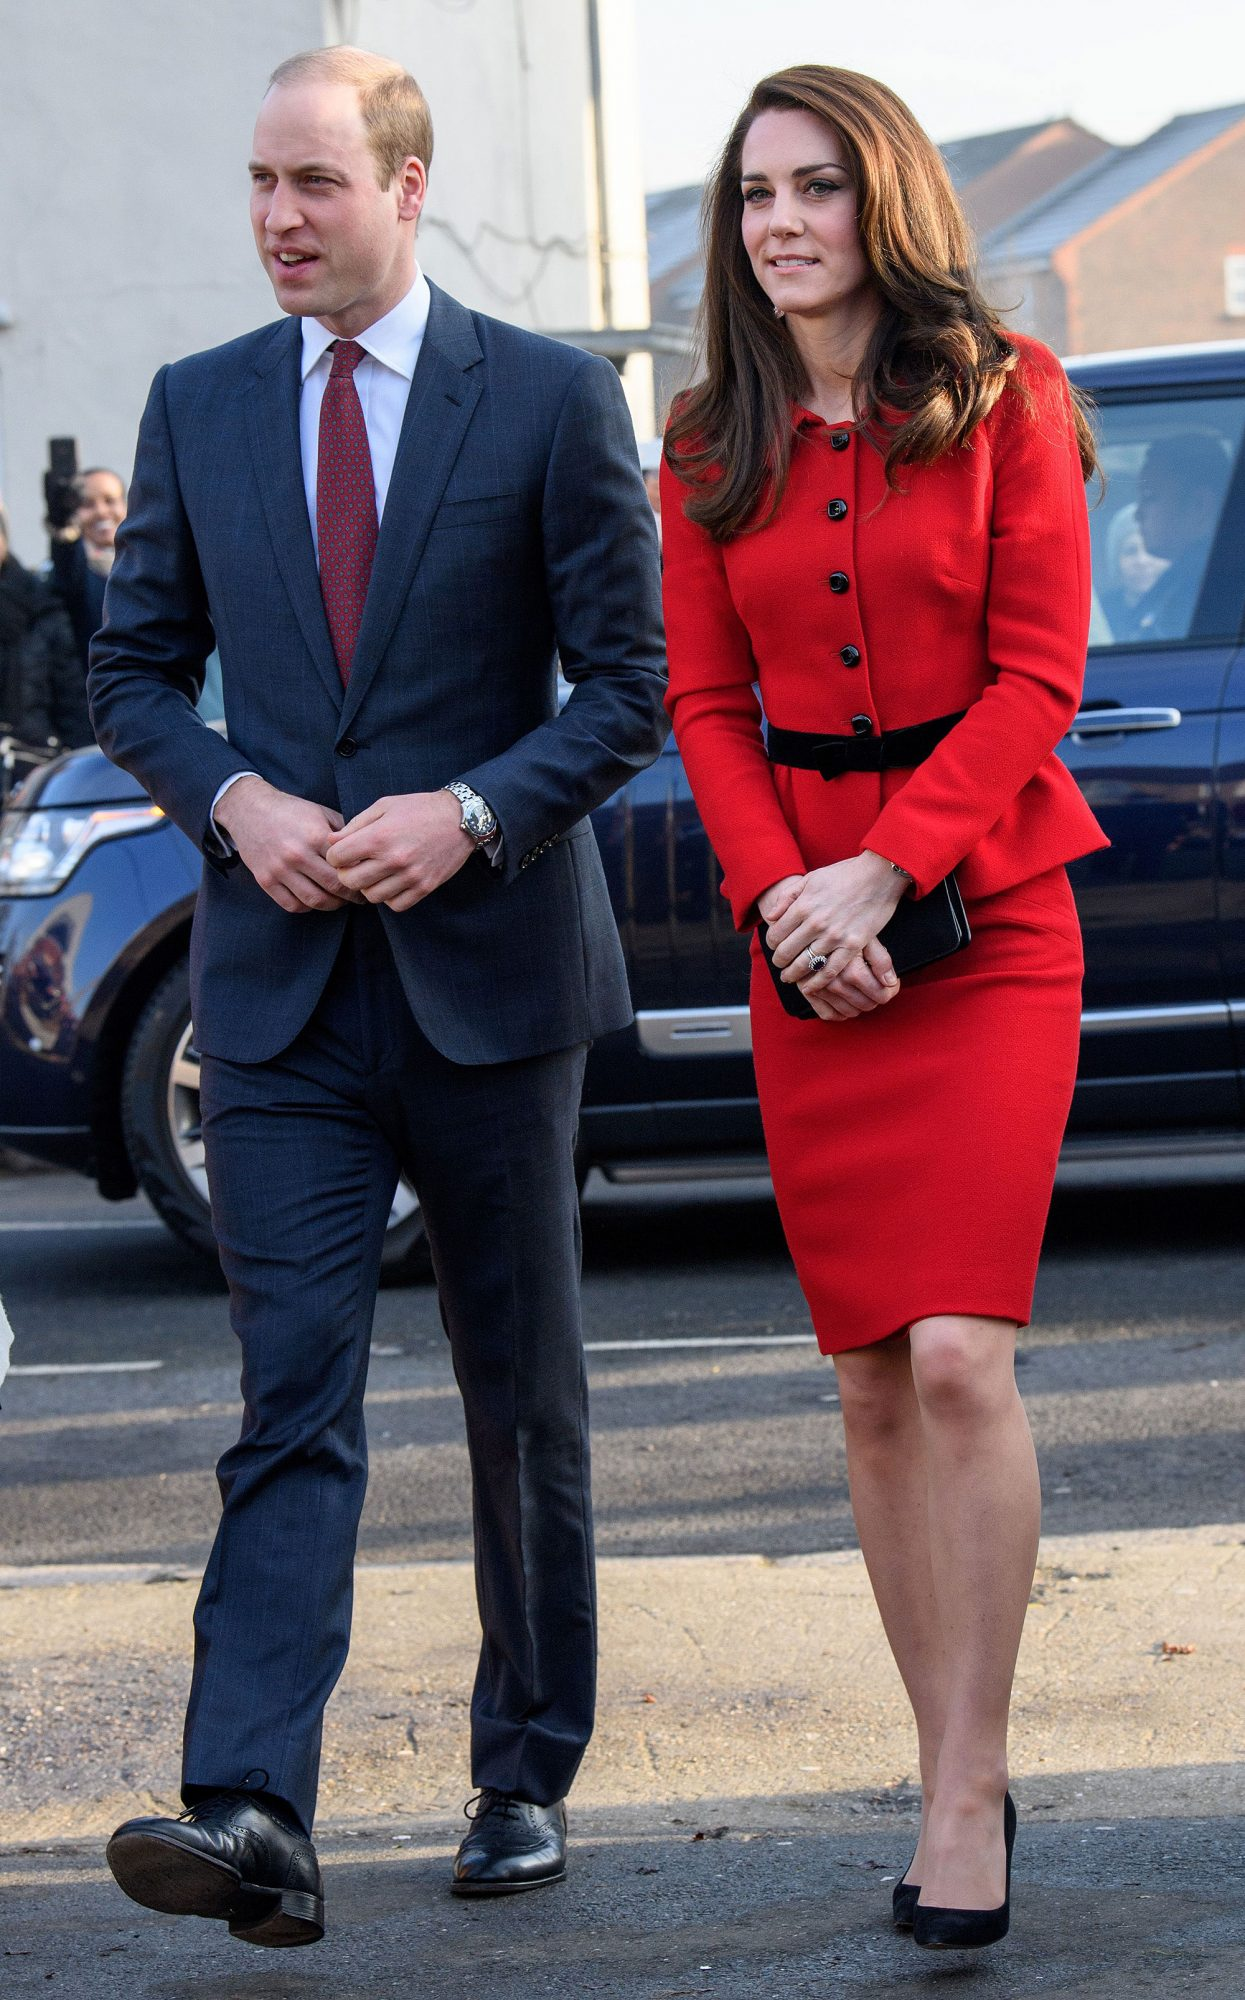 Mandatory Credit: Photo by Tim Rooke/REX/Shutterstock (8269657ac) Prince William and Catherine Duchess of Cambridge visit Mitchell Brook Primary School as part of the Heads Together campaign during Children's Mental Health week Prince William and Catherine Duchess of Cambridge visit Mitchell Brook school, London, UK - 06 Feb 2017 Catherine Duchess of Cambridge, Patron of Place2Be, accompanied by Prince William attend ?The Big Assembly? by Place2Be hosted at Mitchell Brook Primary School, as part of the Heads Together campaign to start millions of conversations on mental health in 2017. The Big Assembly, on the theme of kindness, is one of many being held at primary schools across the UK to mark Children's Mental Health Week (6th ? 12th February 2017).